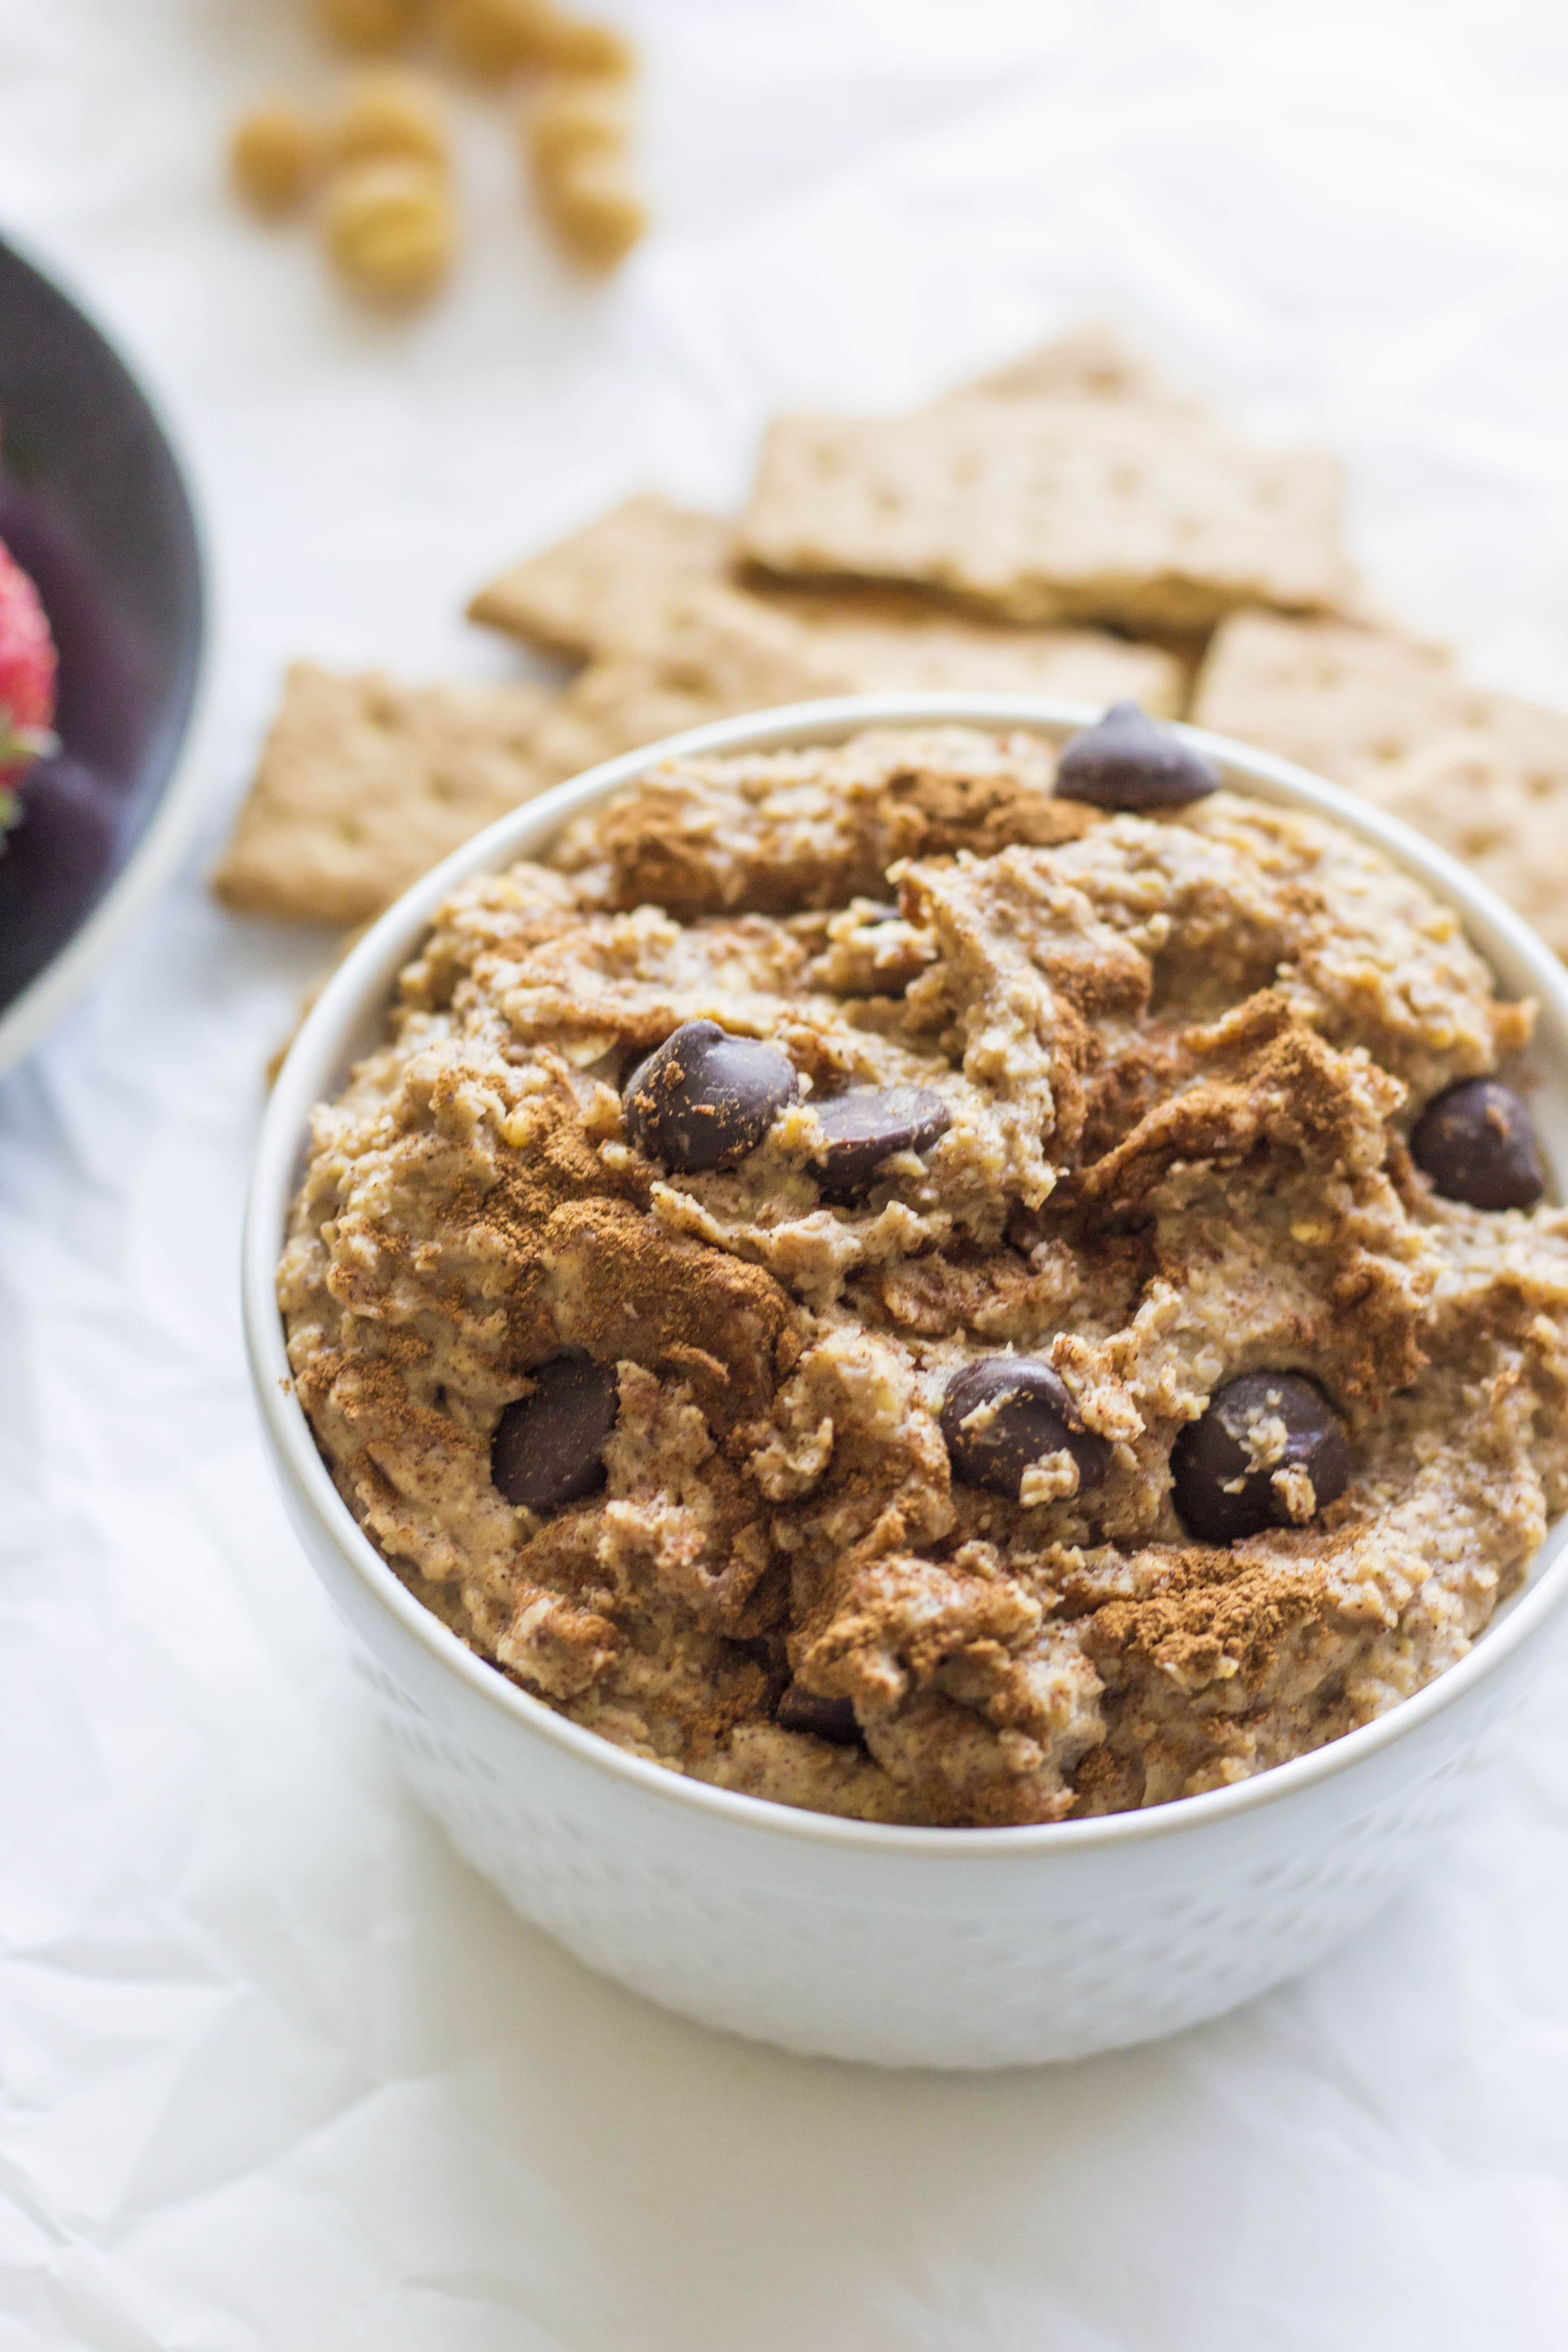 Cinnamon Chocolate Chip Chickpea Dip | A healthier appetizer made of chickpeas--your friends will never know!!